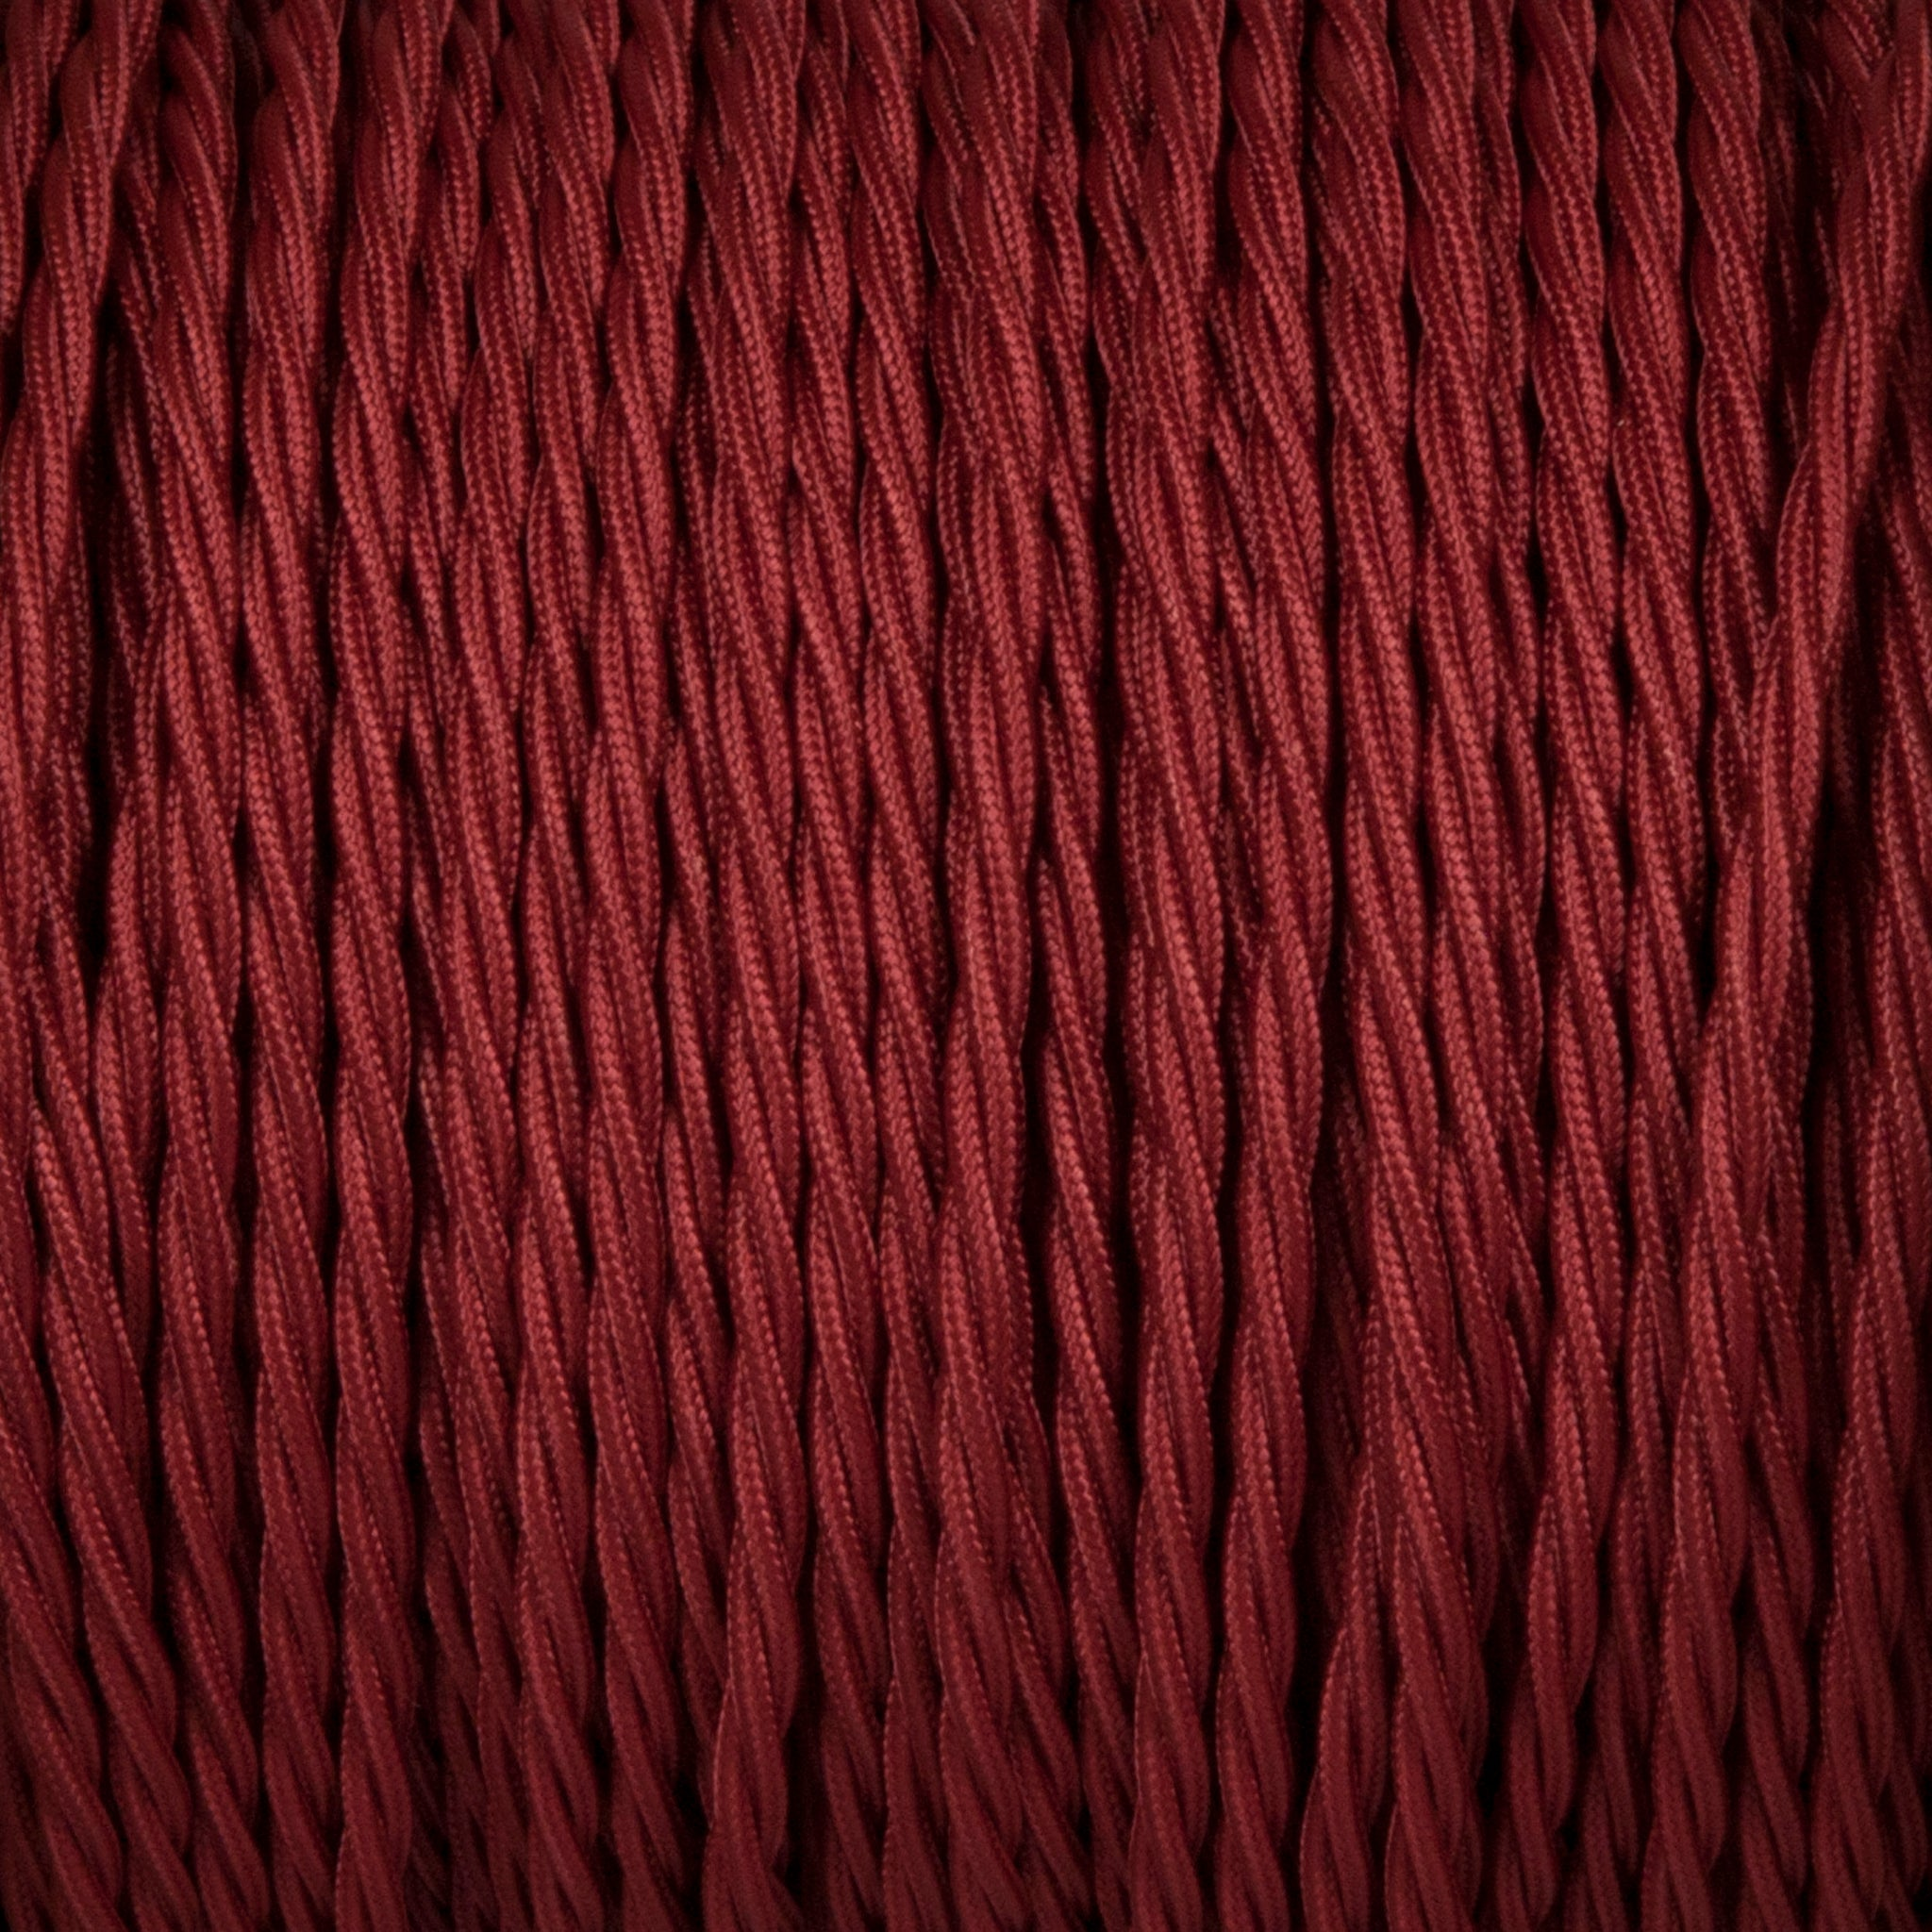 Twisted lighting cable - Burgundy braided fabric